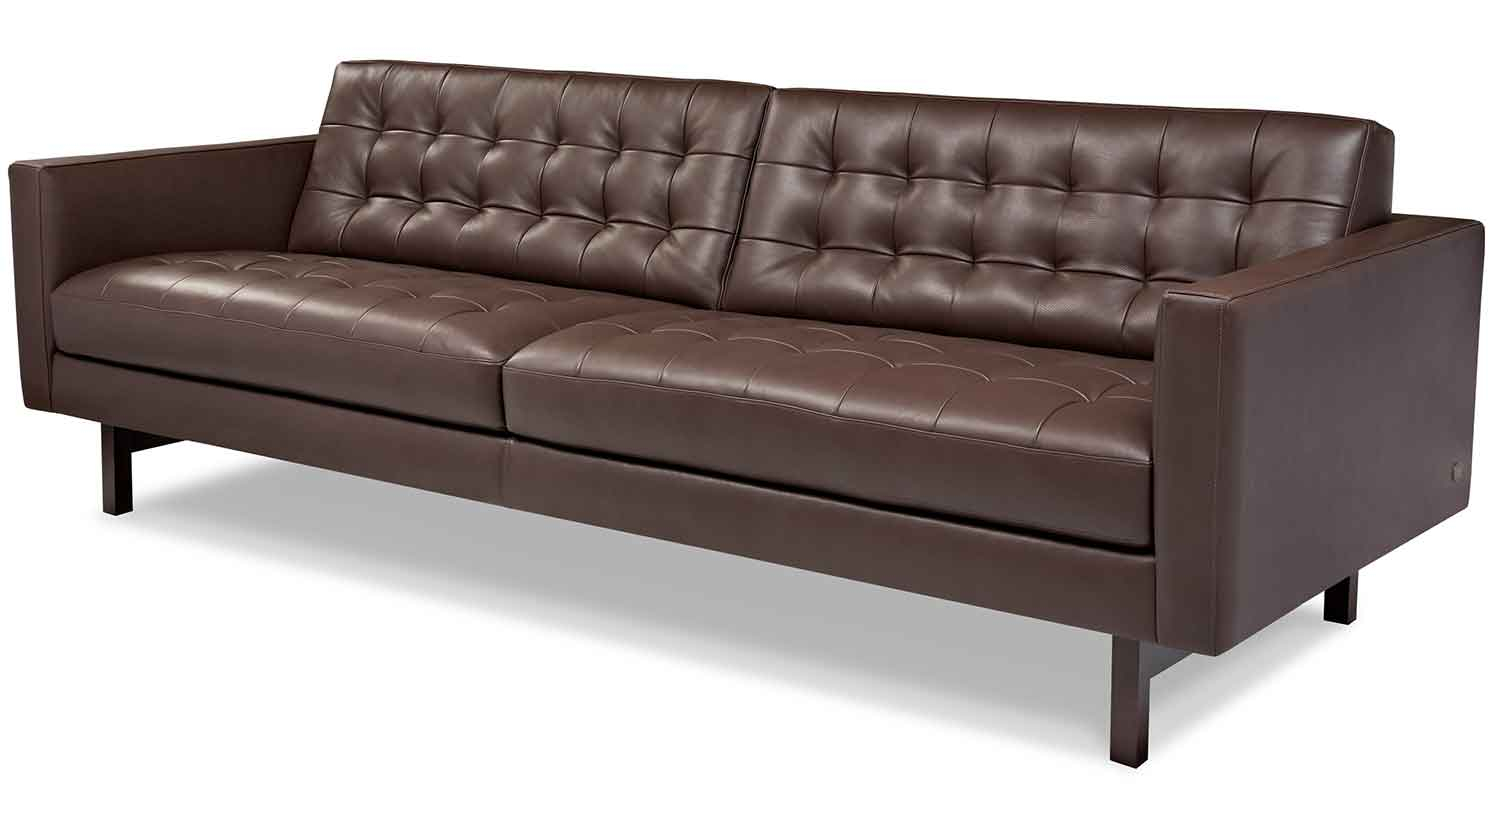 Circle Furniture – Parker Sofa | Designer Sofas Boston | Circle Pertaining To Parker Sofa Chairs (Image 5 of 25)